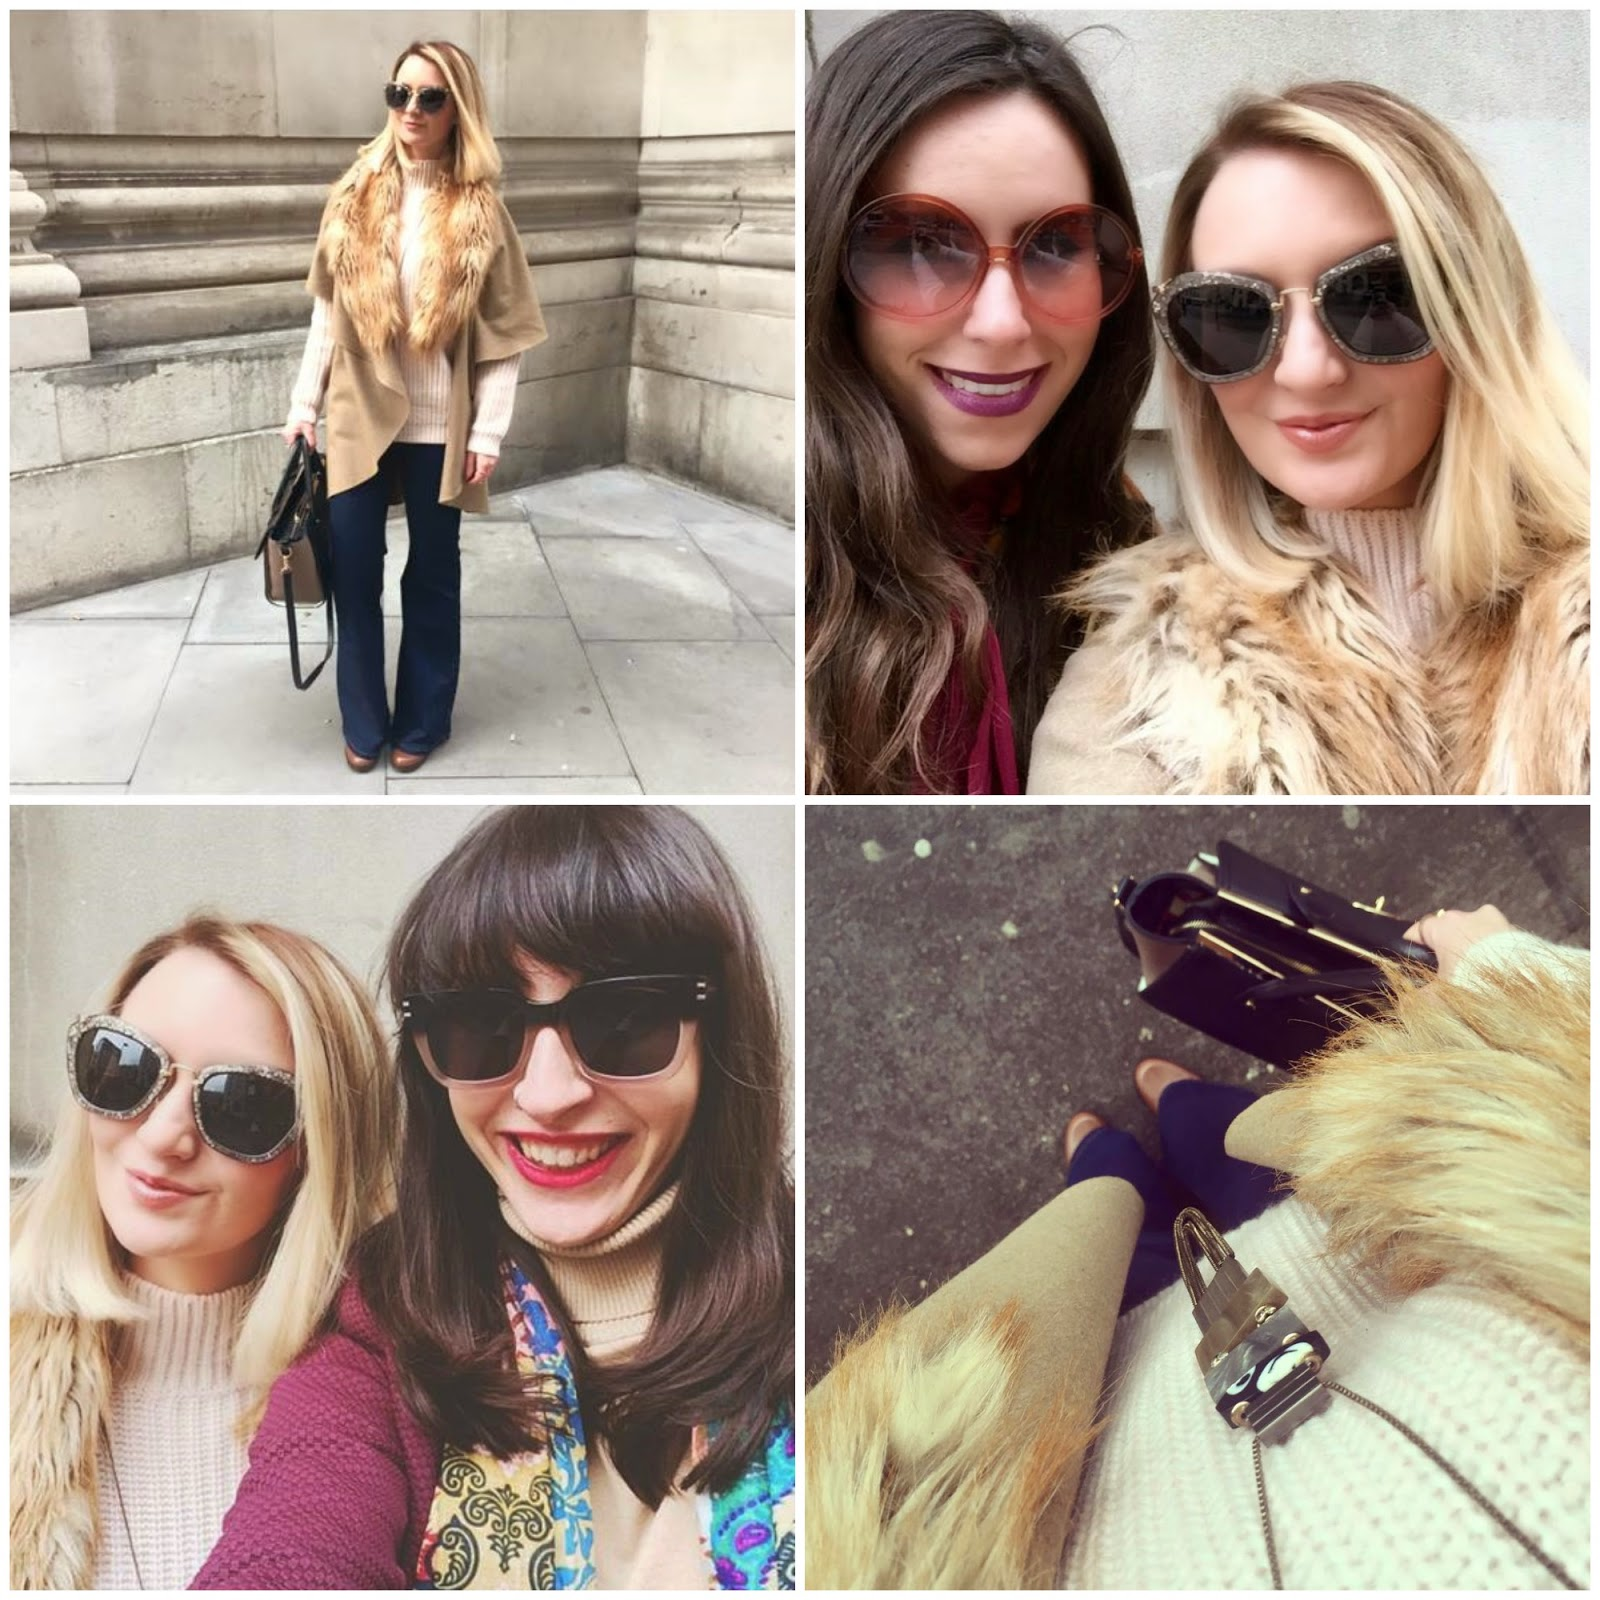 LFW AW15 Snapshots: Photo Diary, mode madeleine, fashion blogger, LFW, AW15, london fashion week, seventies, styling, catwalk, fashion week, felder felder, bora aksu, red hot sunglasses, sam faires, michelle keegan, rosie londoner